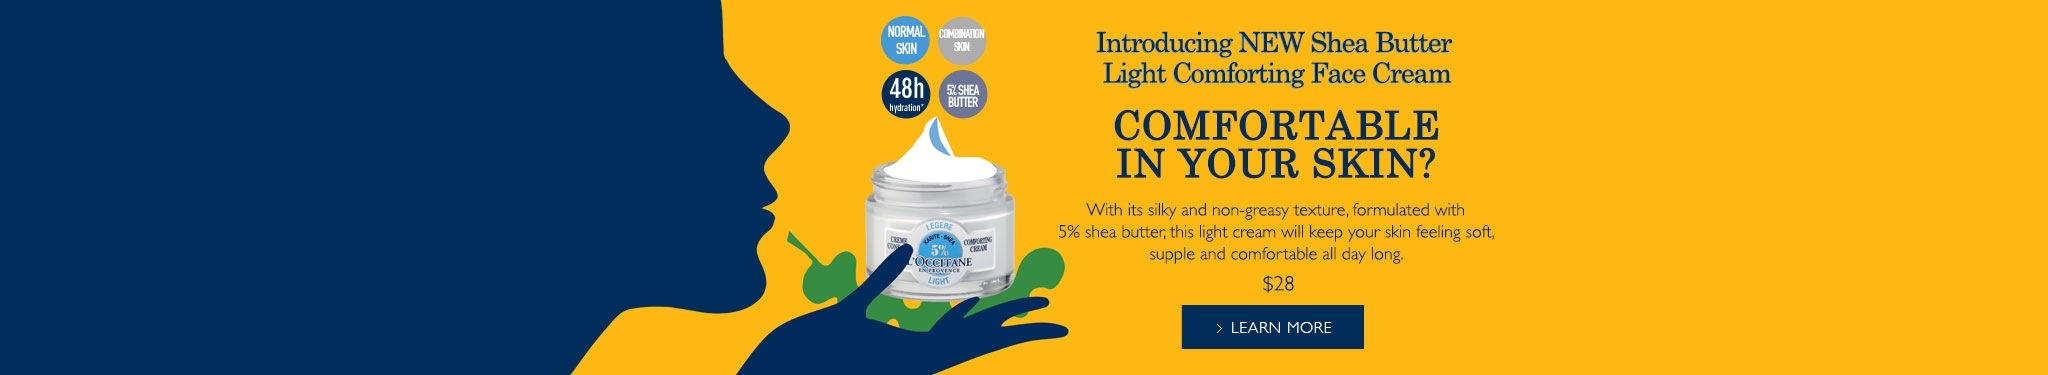 Introducing the New Shea Butter Light Comforting Face Cream